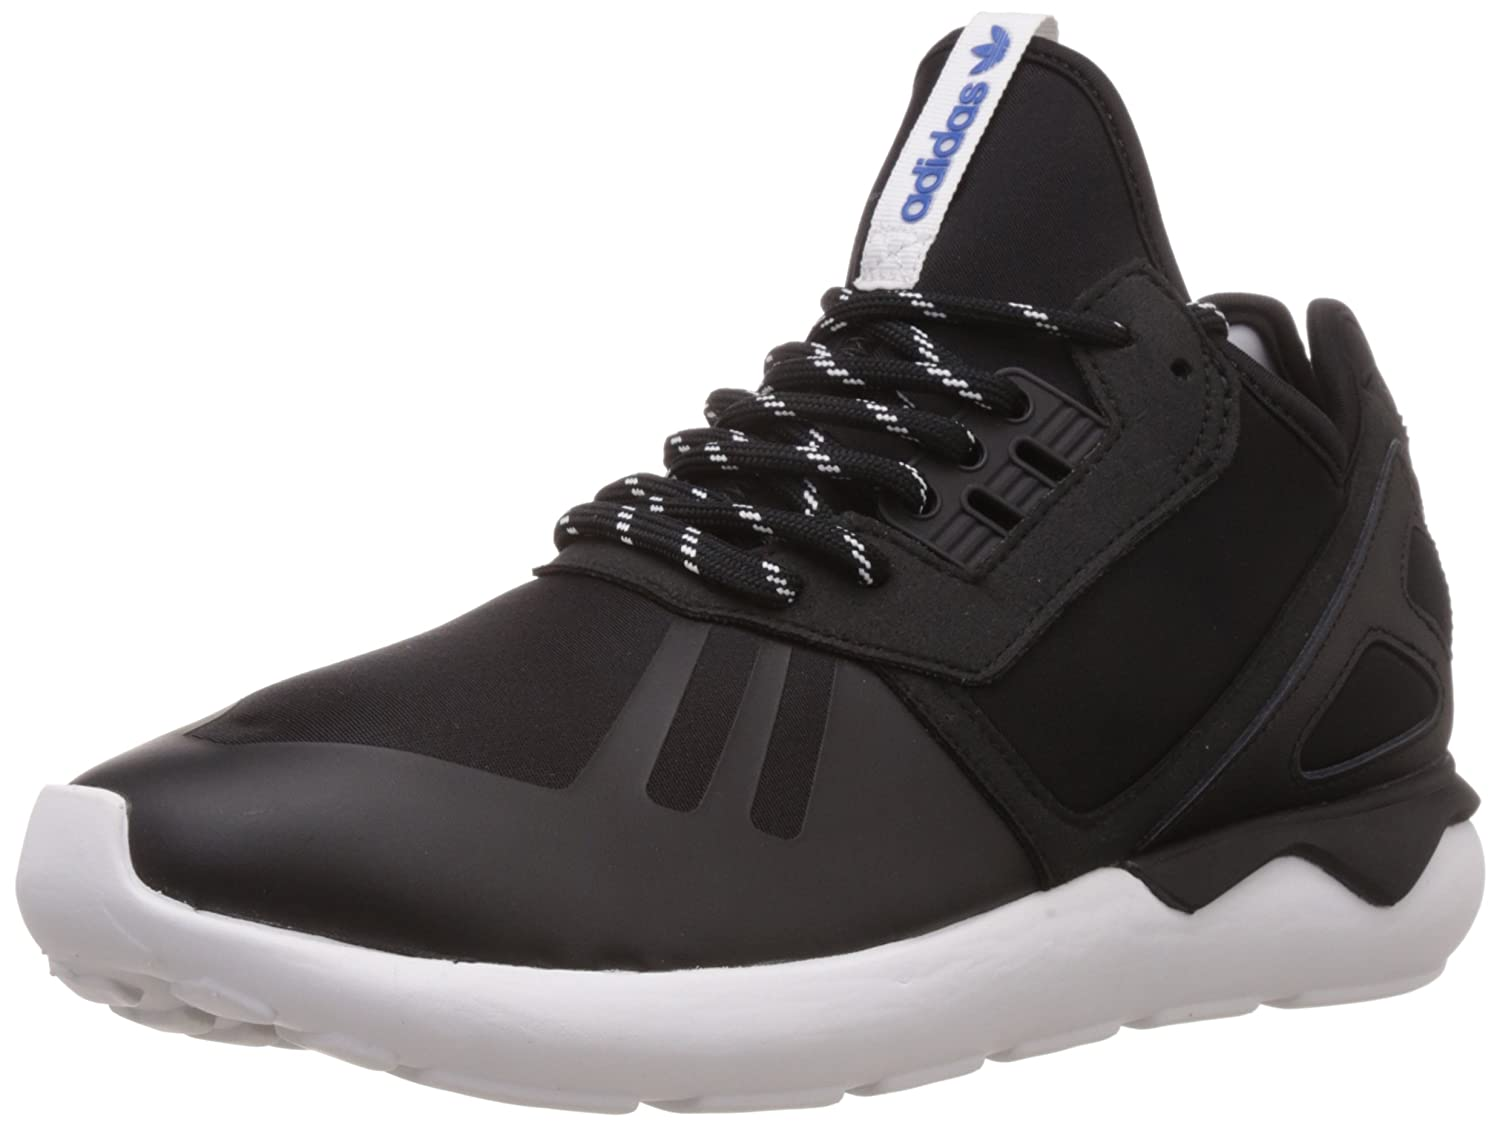 new products 67b72 2602b adidas Tubular Runner, Men s Running Shoes  Amazon.co.uk  Shoes   Bags